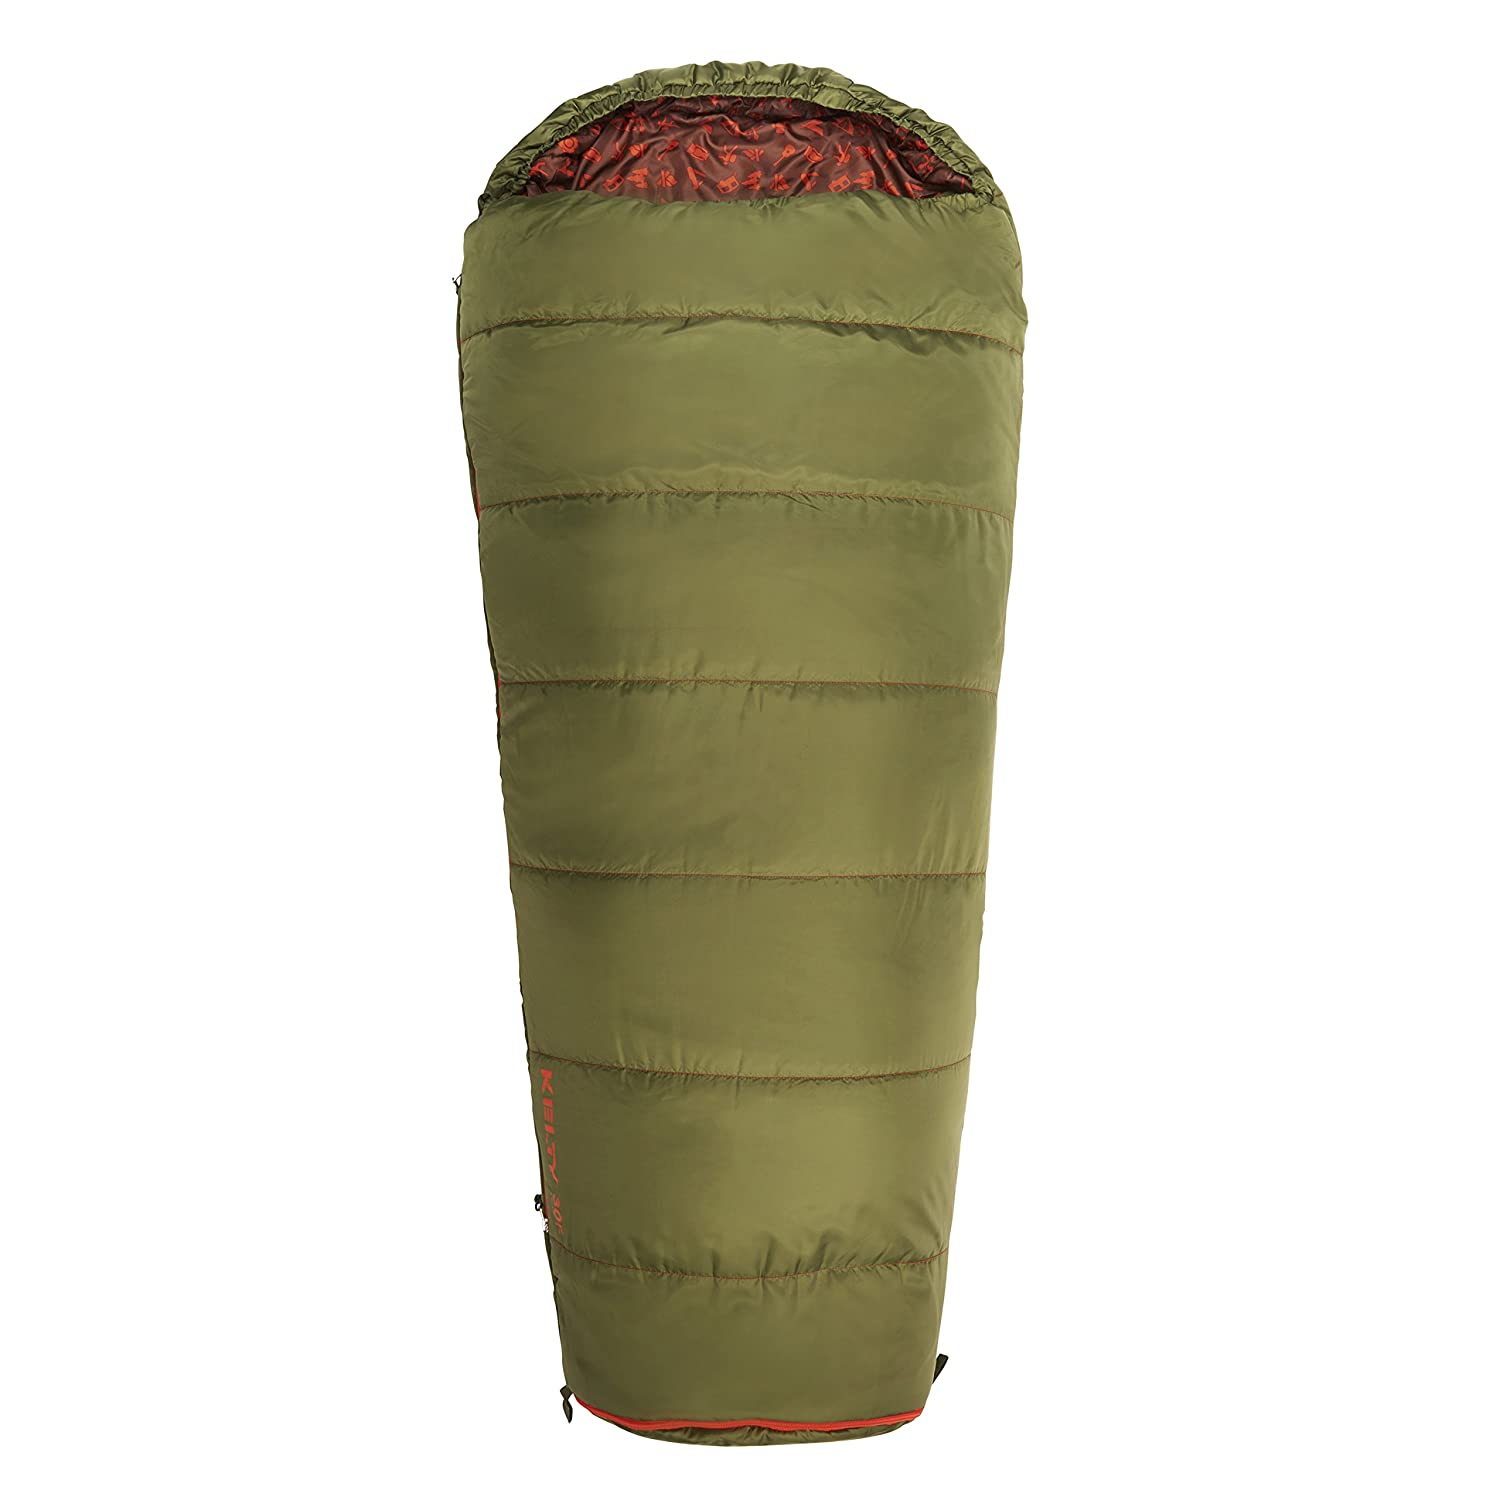 Kelty Boys /& Girls Big Dipper Sleeping Bag Camping Backpacking and More Childrens Sleeping Bag for Sleepovers